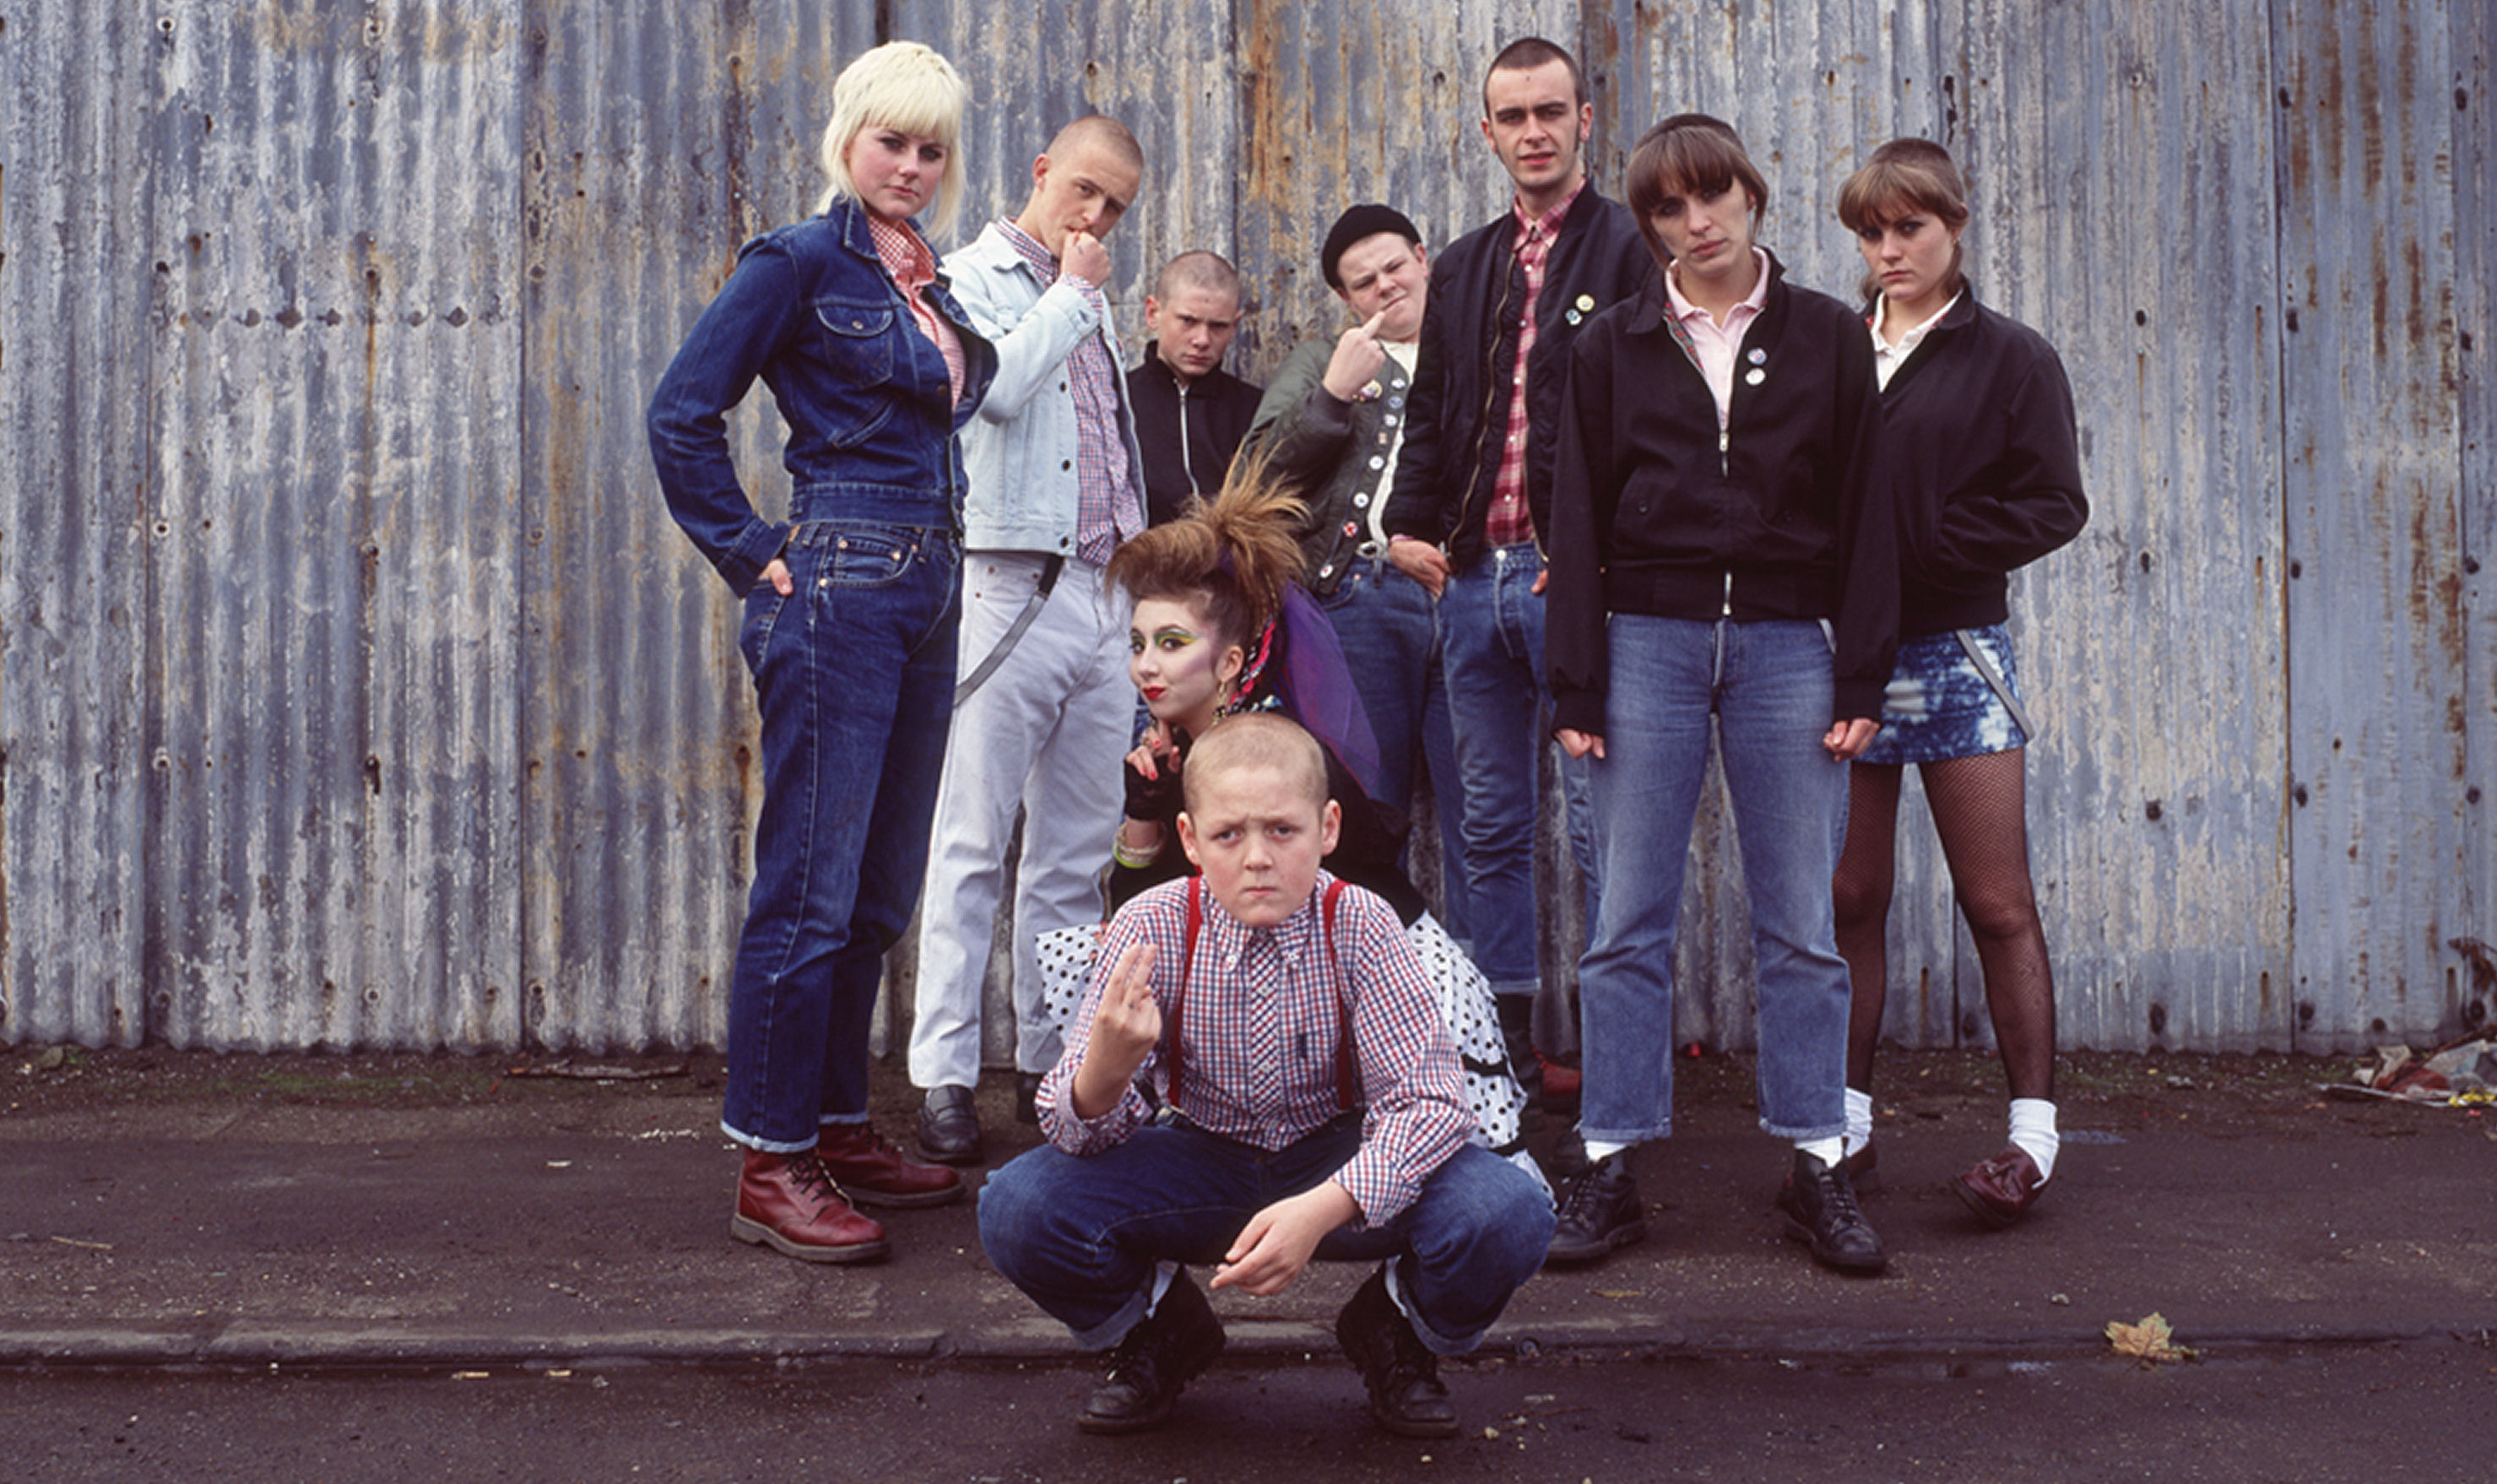 Ben Sherman Check Shirts This Is England